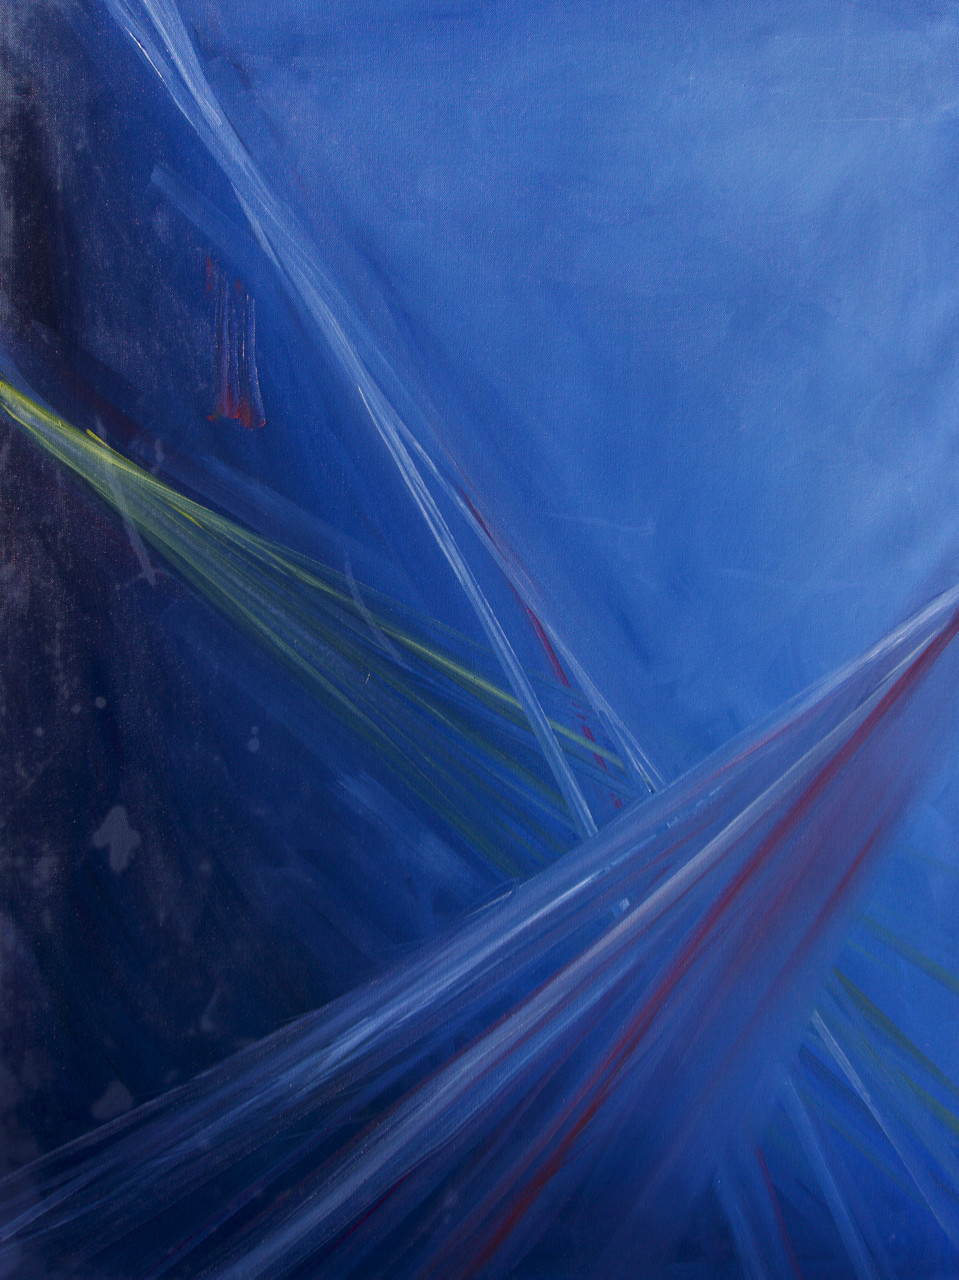 blue ambience, 30x40inches, oil on canvas, 2020